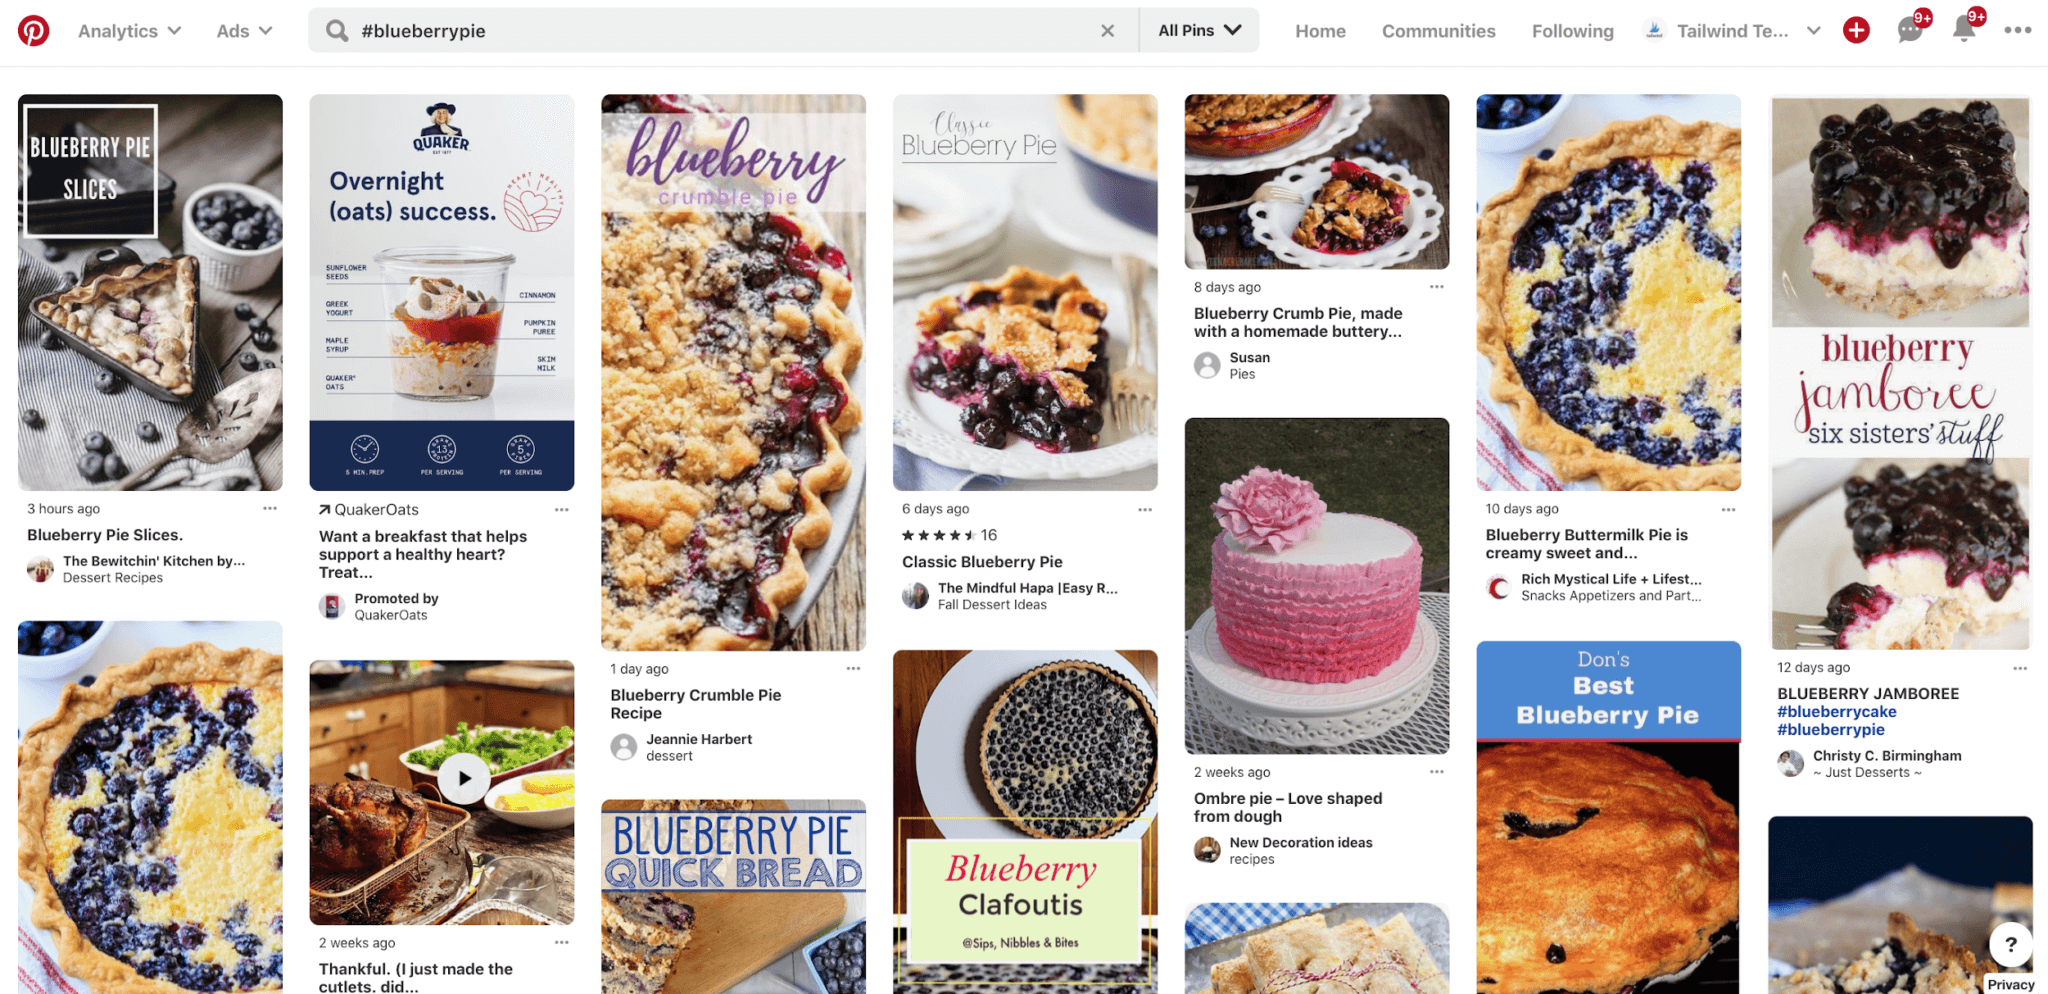 #blueberrypie hashtag results from Pinterest